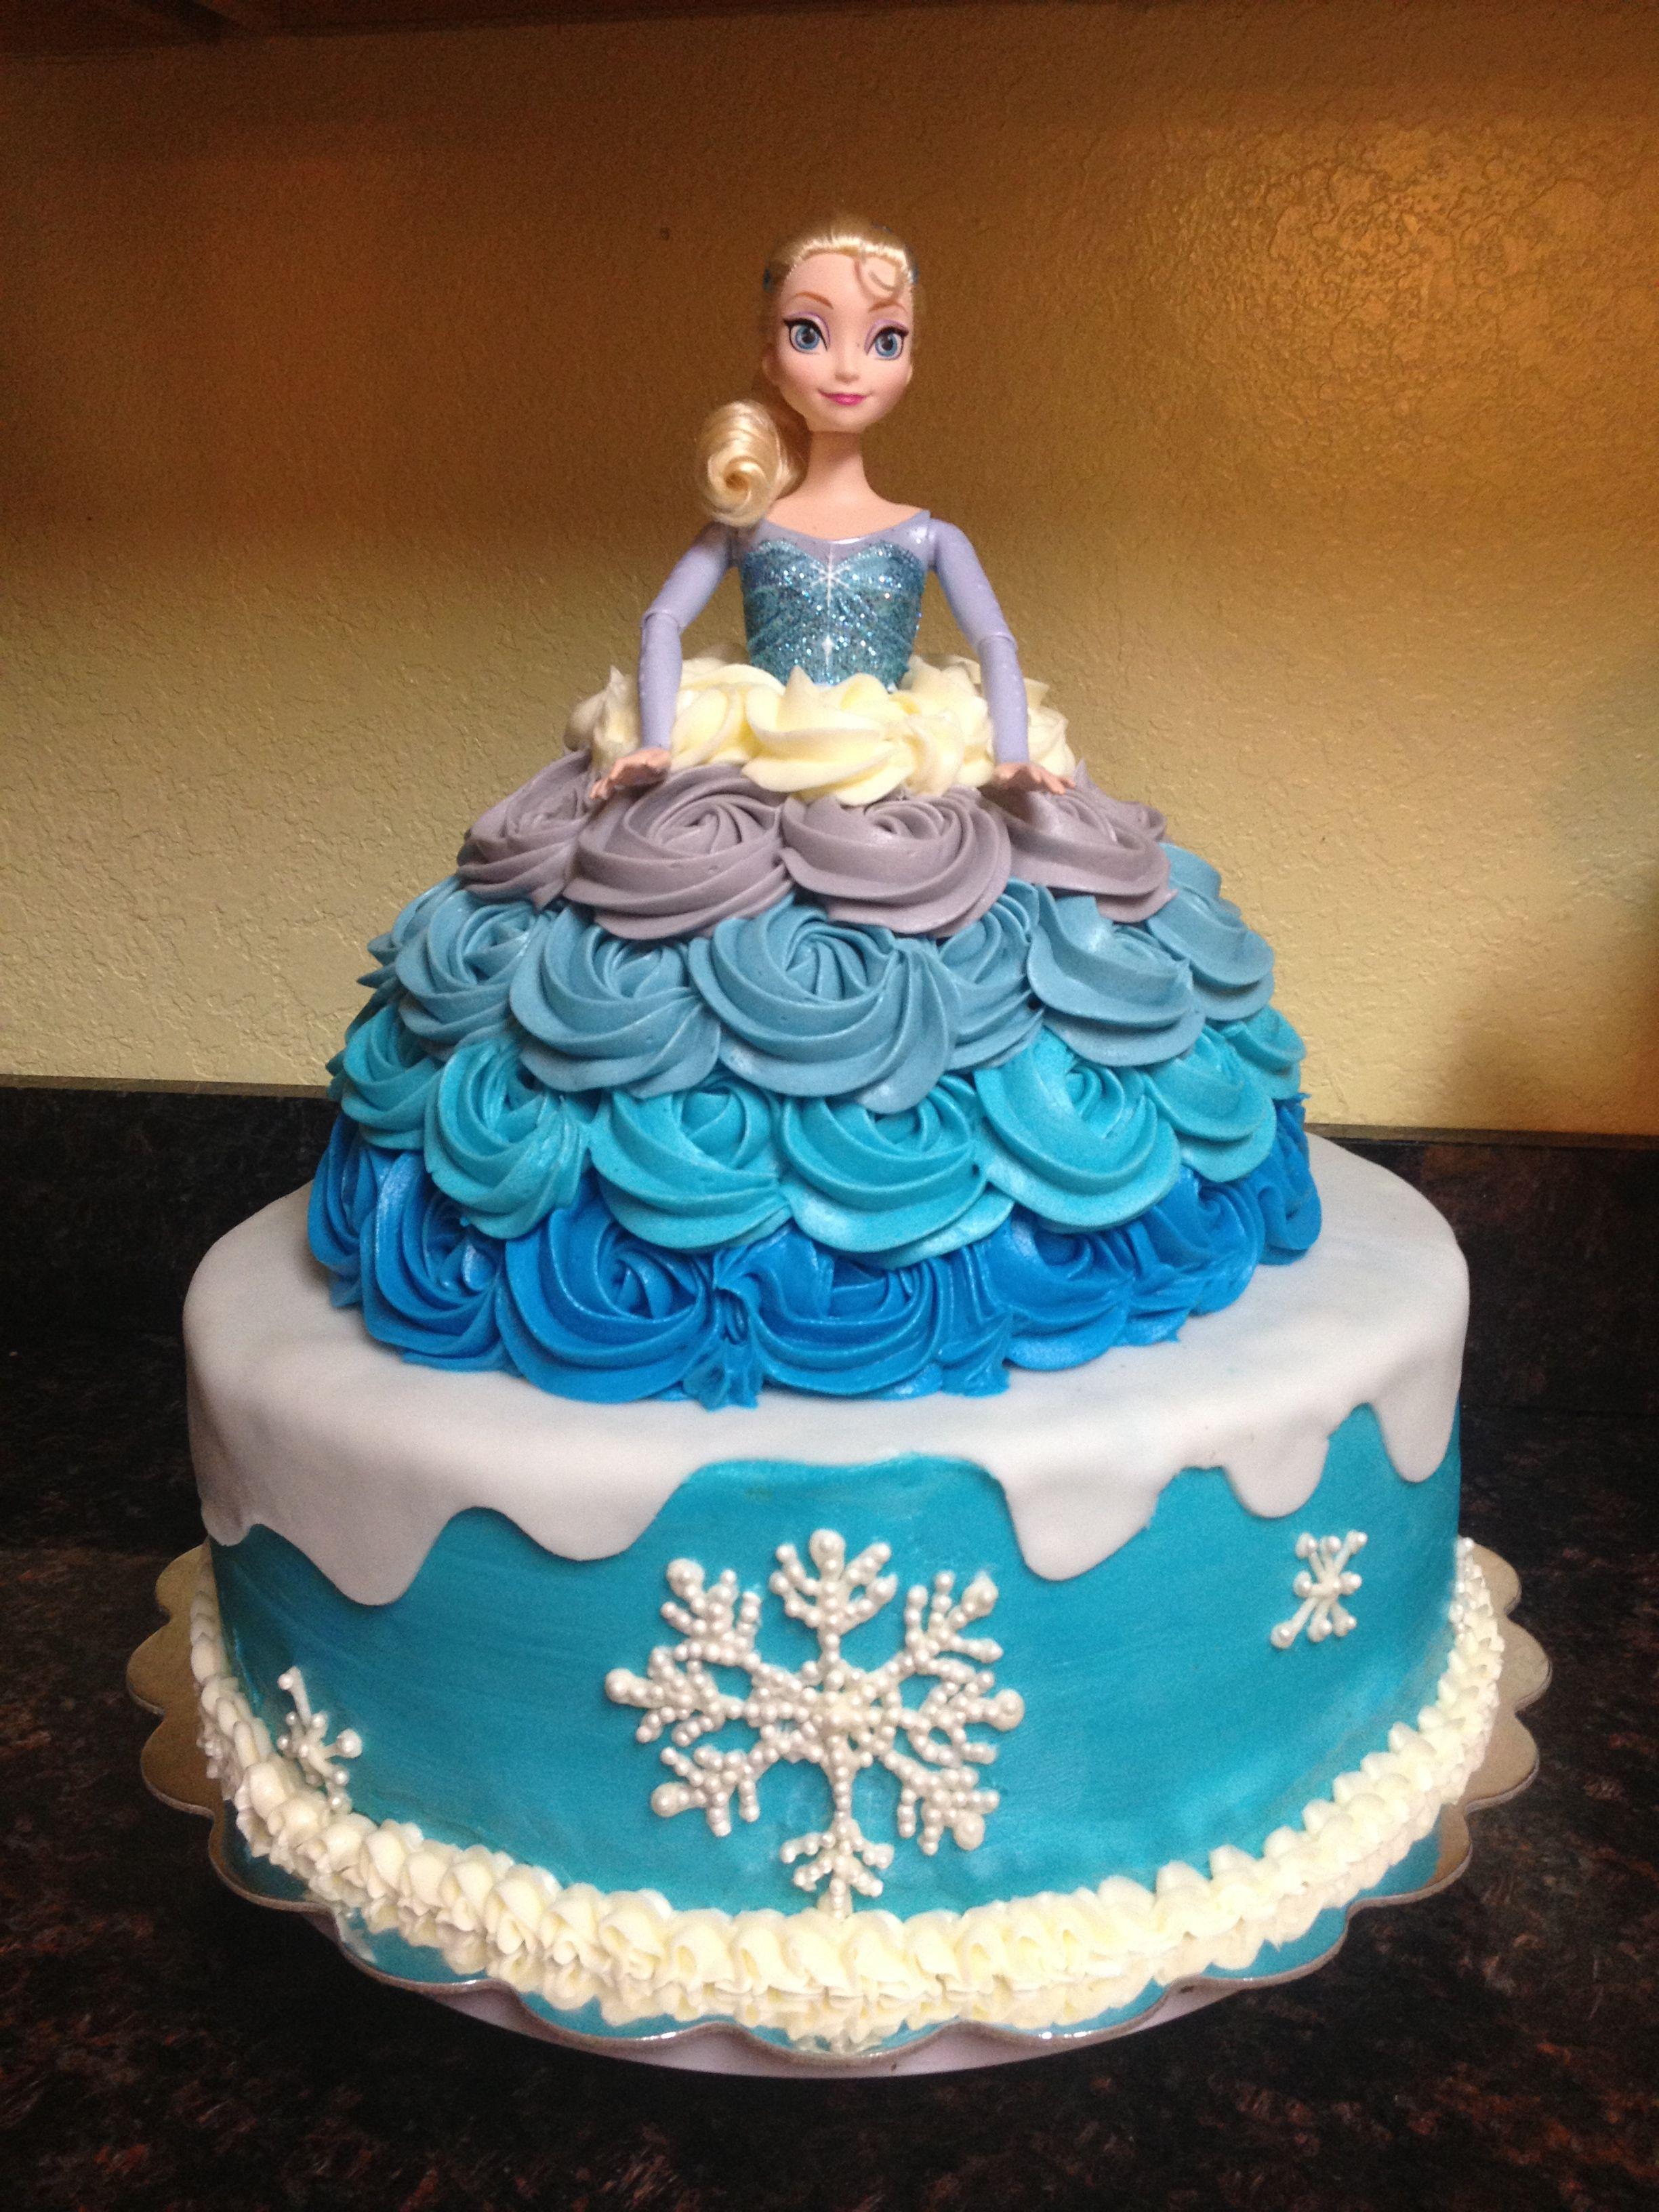 Frozen Cake Used Skating Elsa As Doll Decorations Include